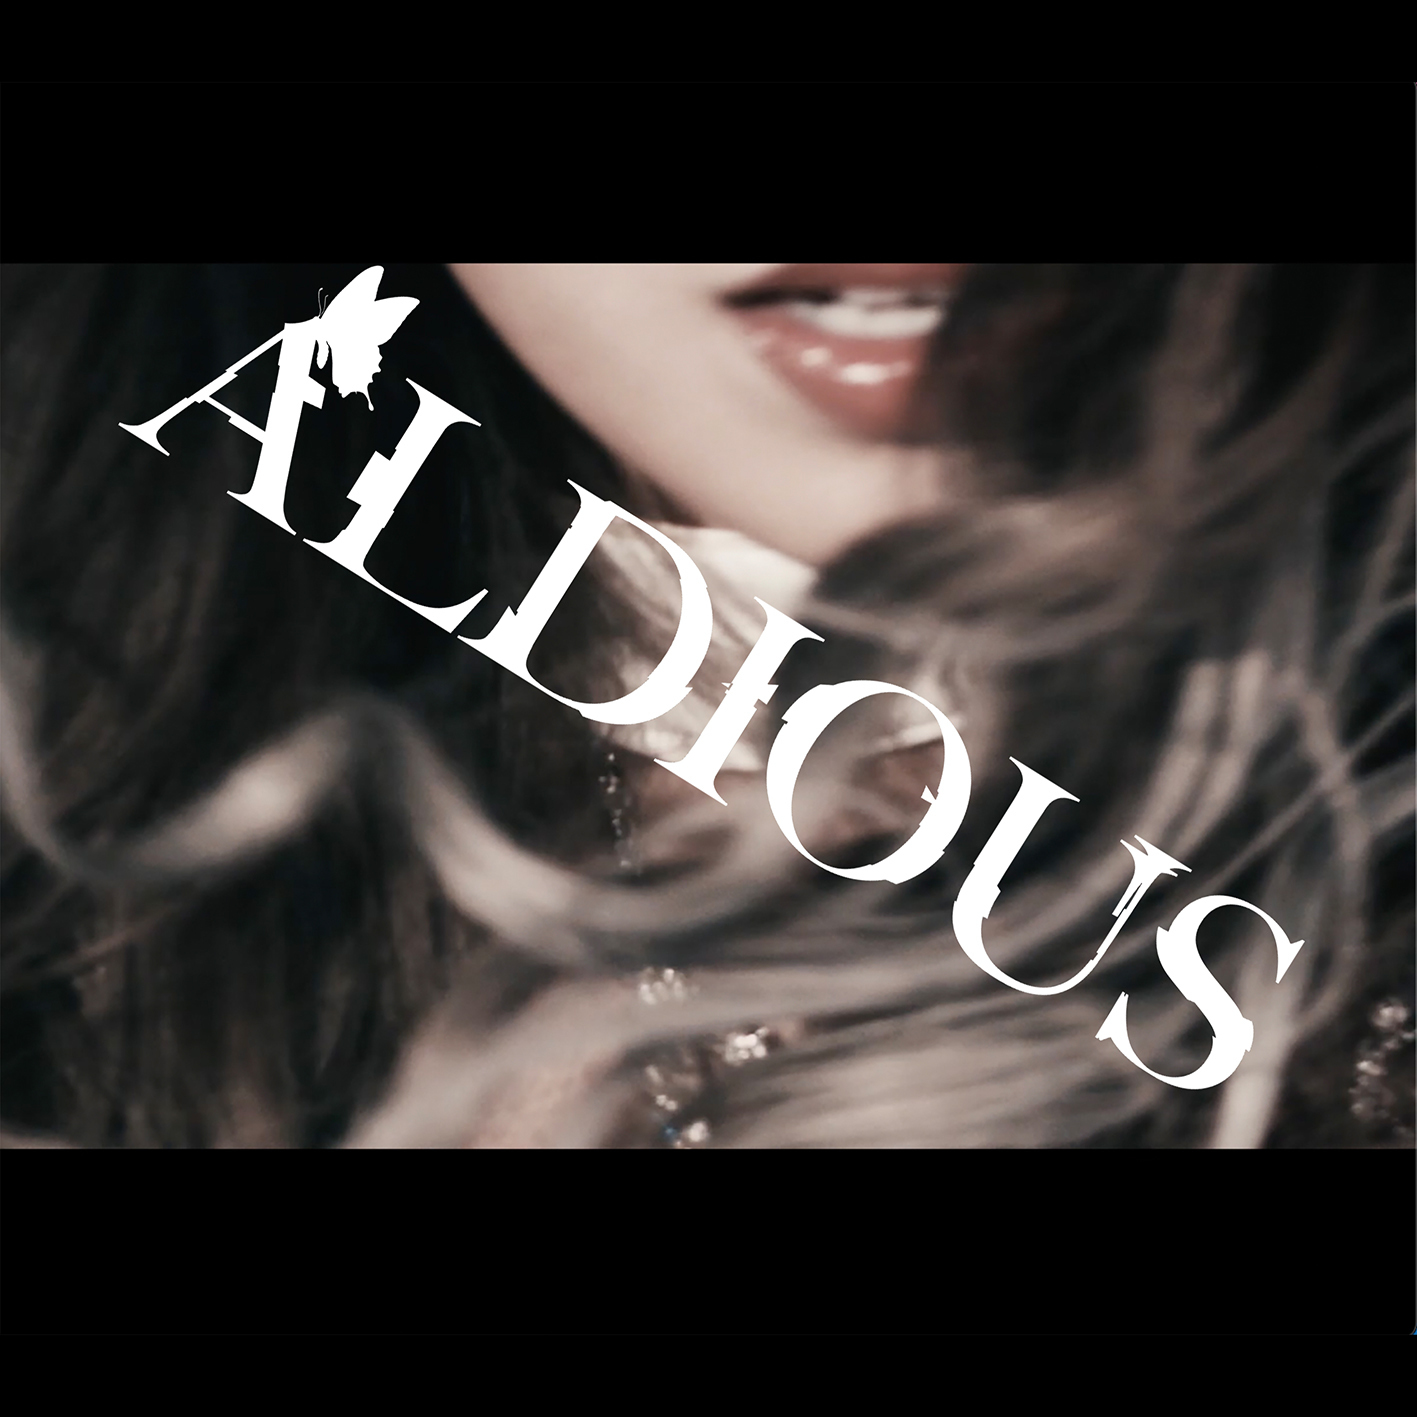 Aldious_showdown_freedom_mini